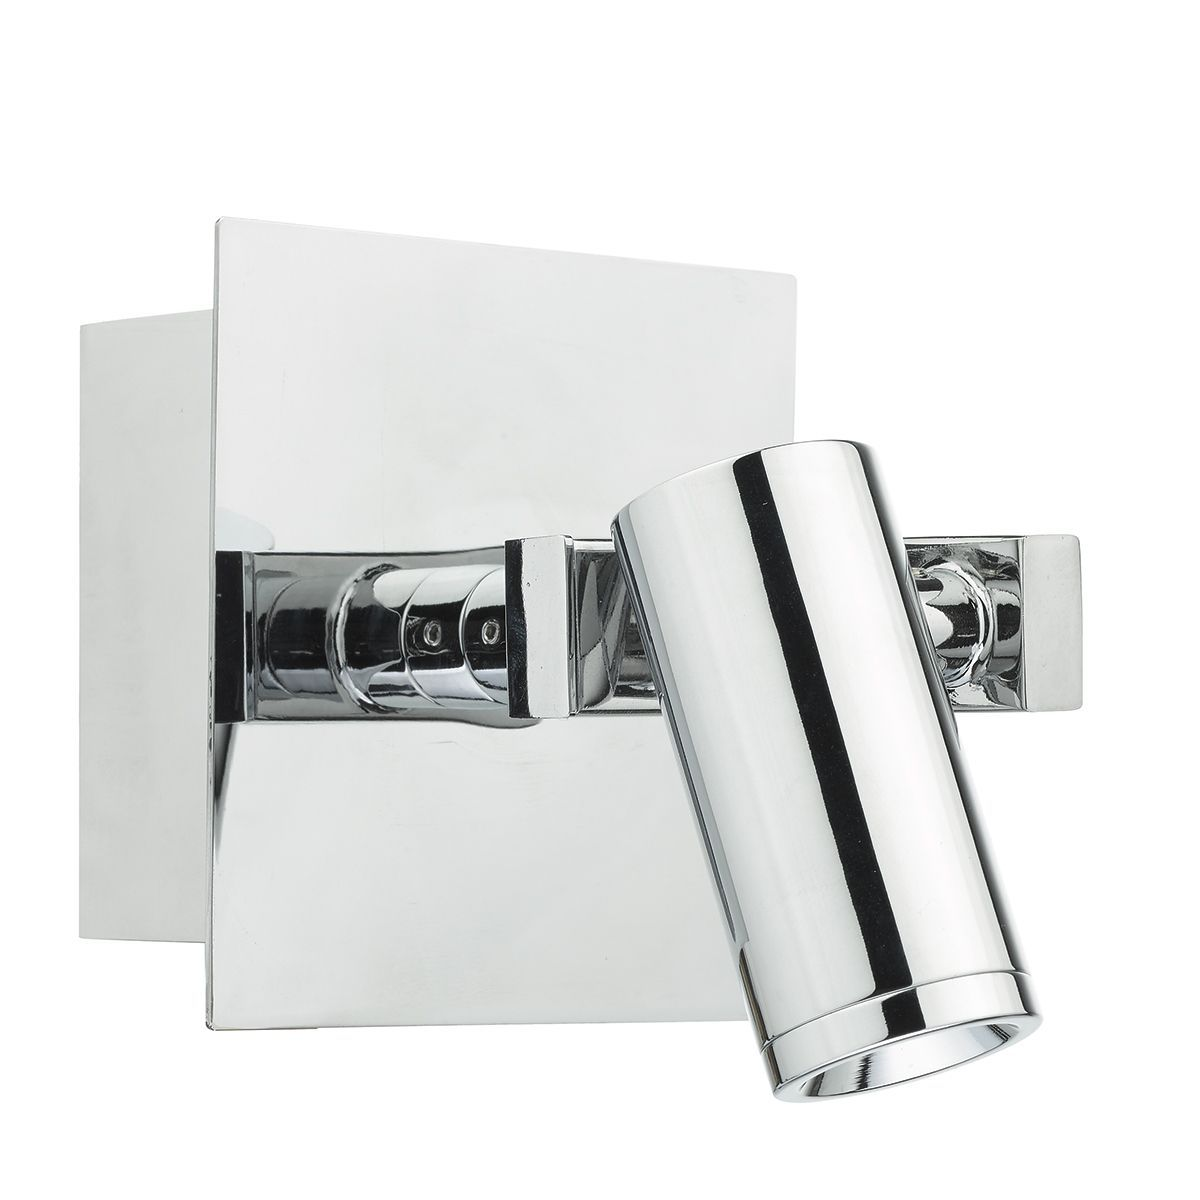 Double Insulated Class 2 Wall Lights : Bex 1 Light Wall Bracket Polished Chrome Class 2 Double Insulated BXBEX0750-17